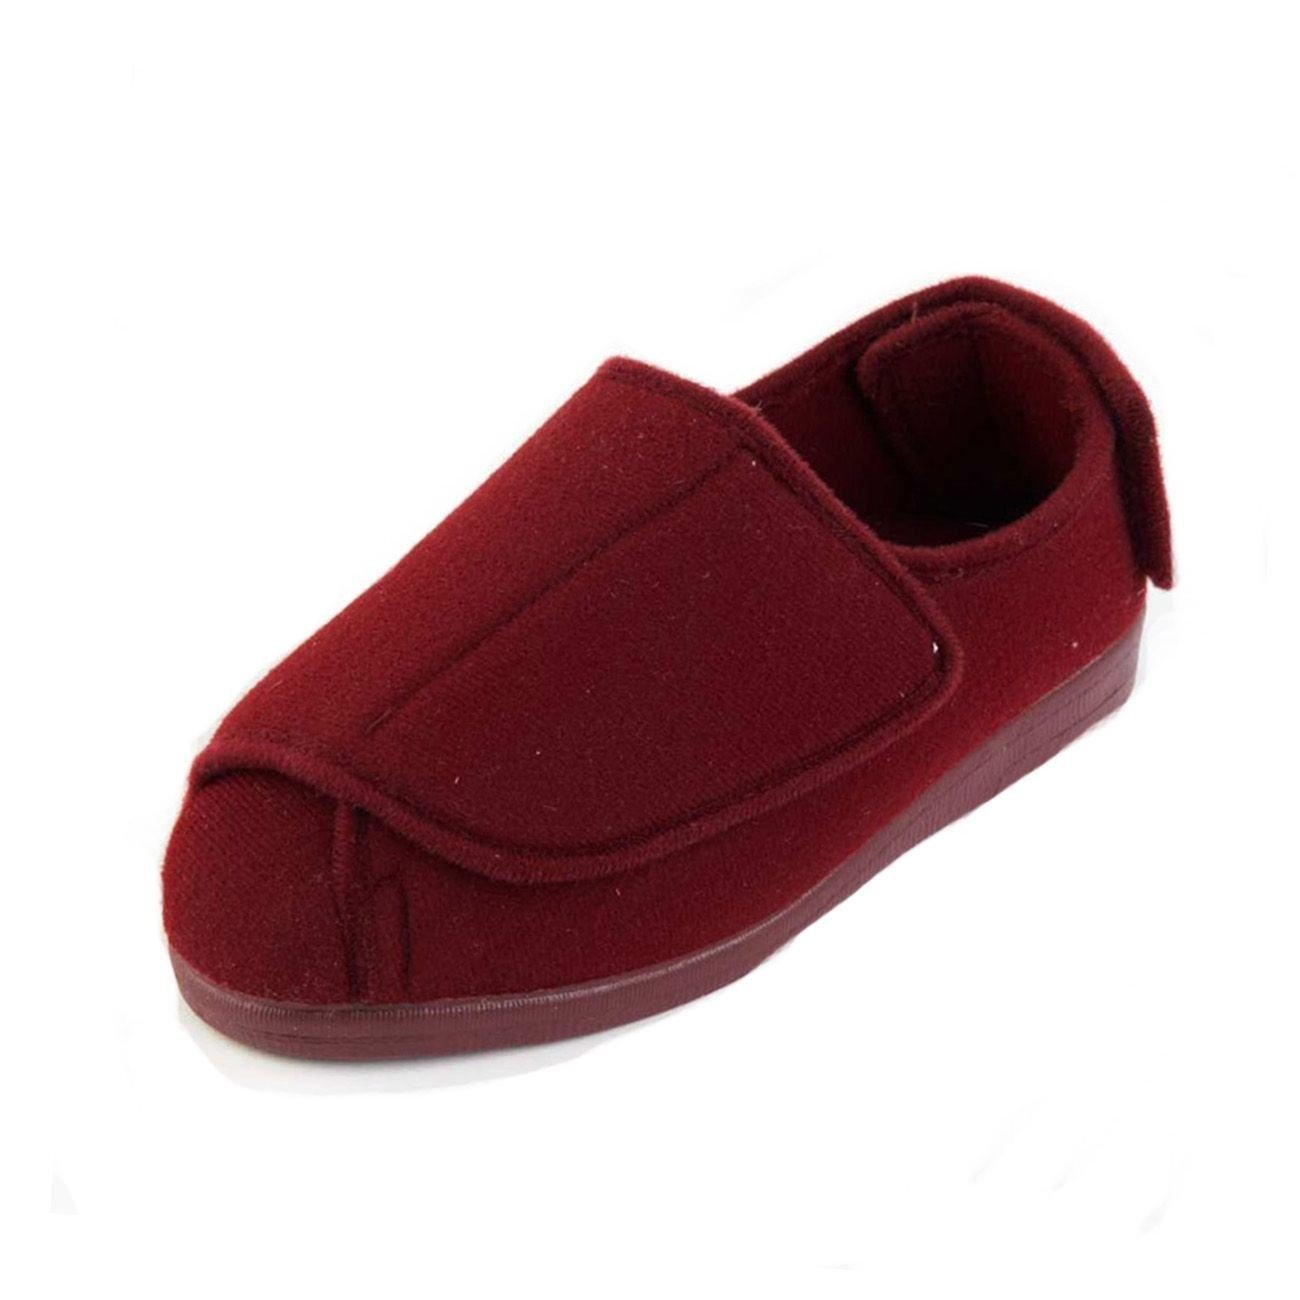 Sandpiper B01N2GZLBR , , Chaussons 19815 pour femme Bordeaux ae33091 - fast-weightloss-diet.space